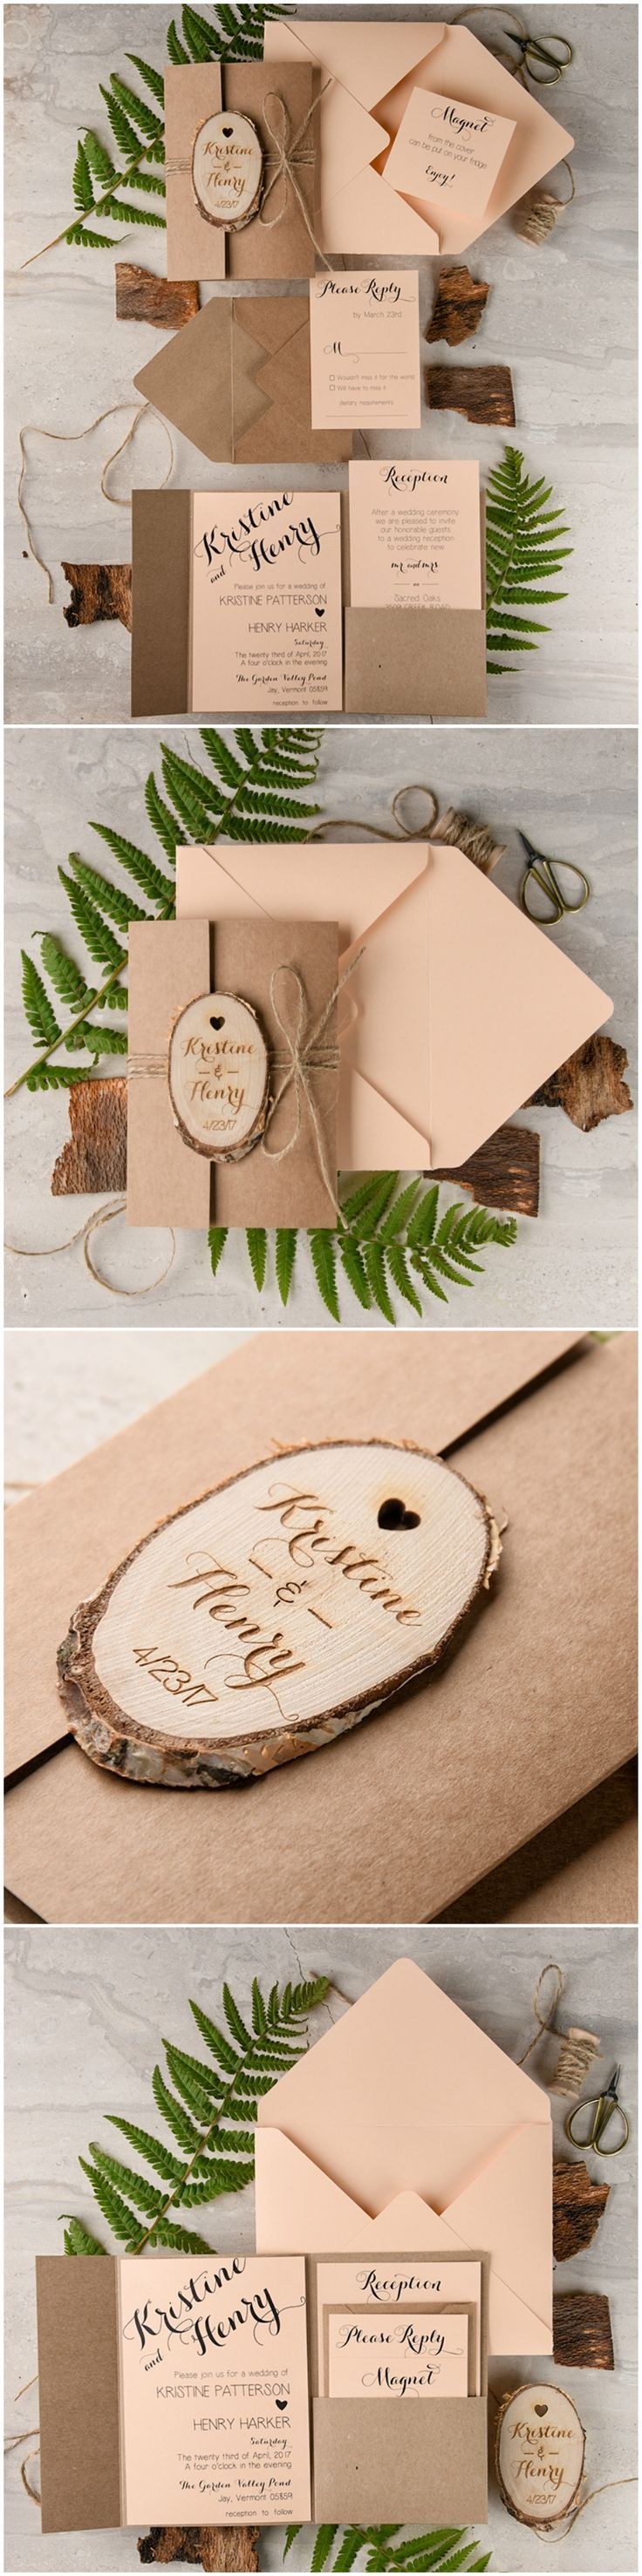 Peach & Eco Wedding Invitations with wooden magnet | Rustic, Eco, Eco friendly | Country wedding